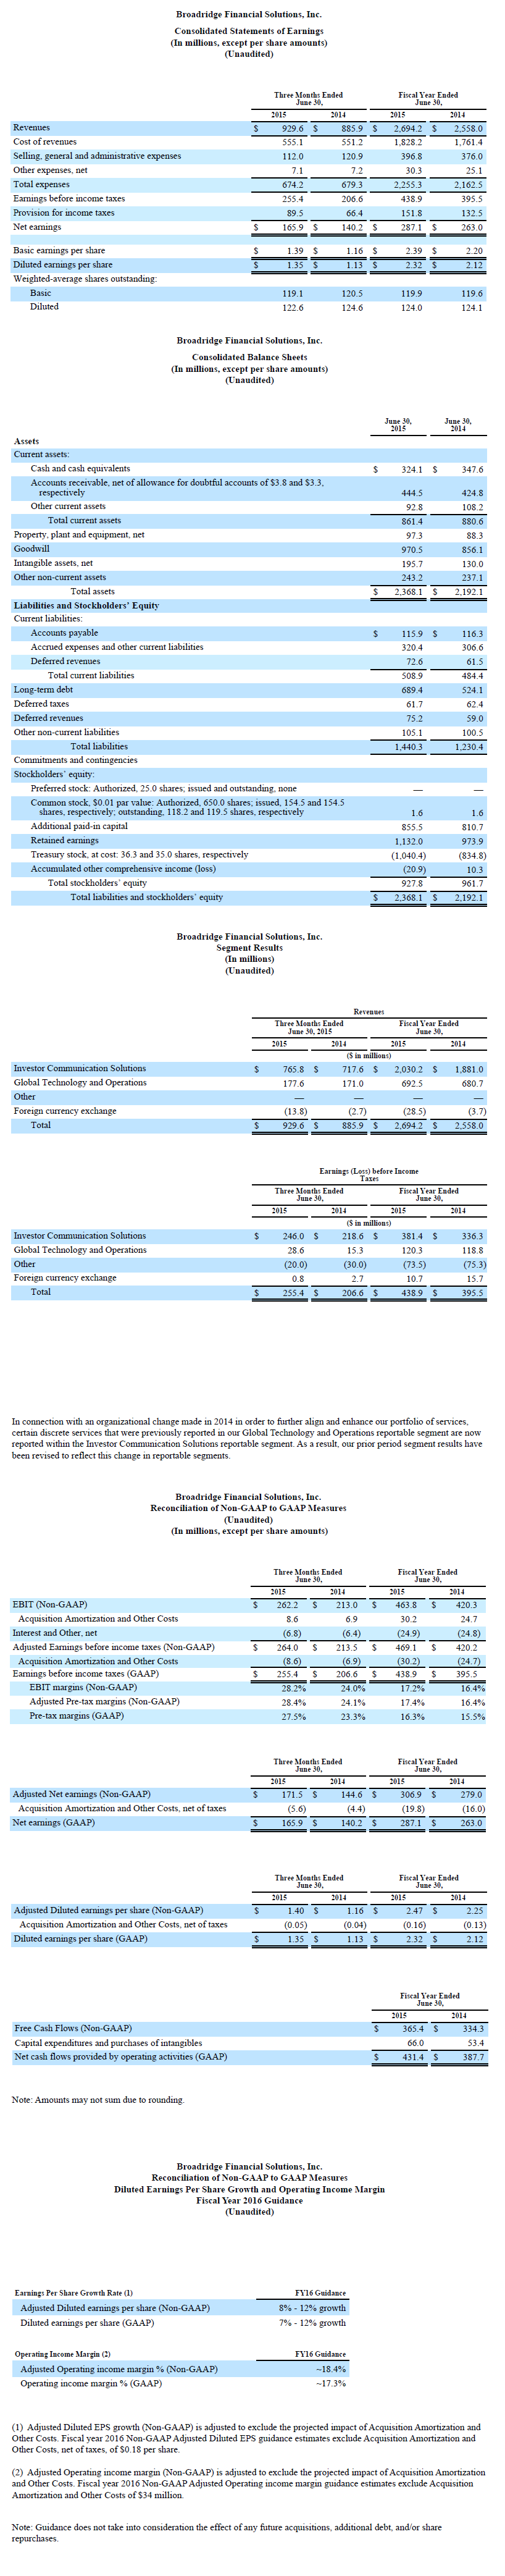 Broadridge Q4 2015 Results